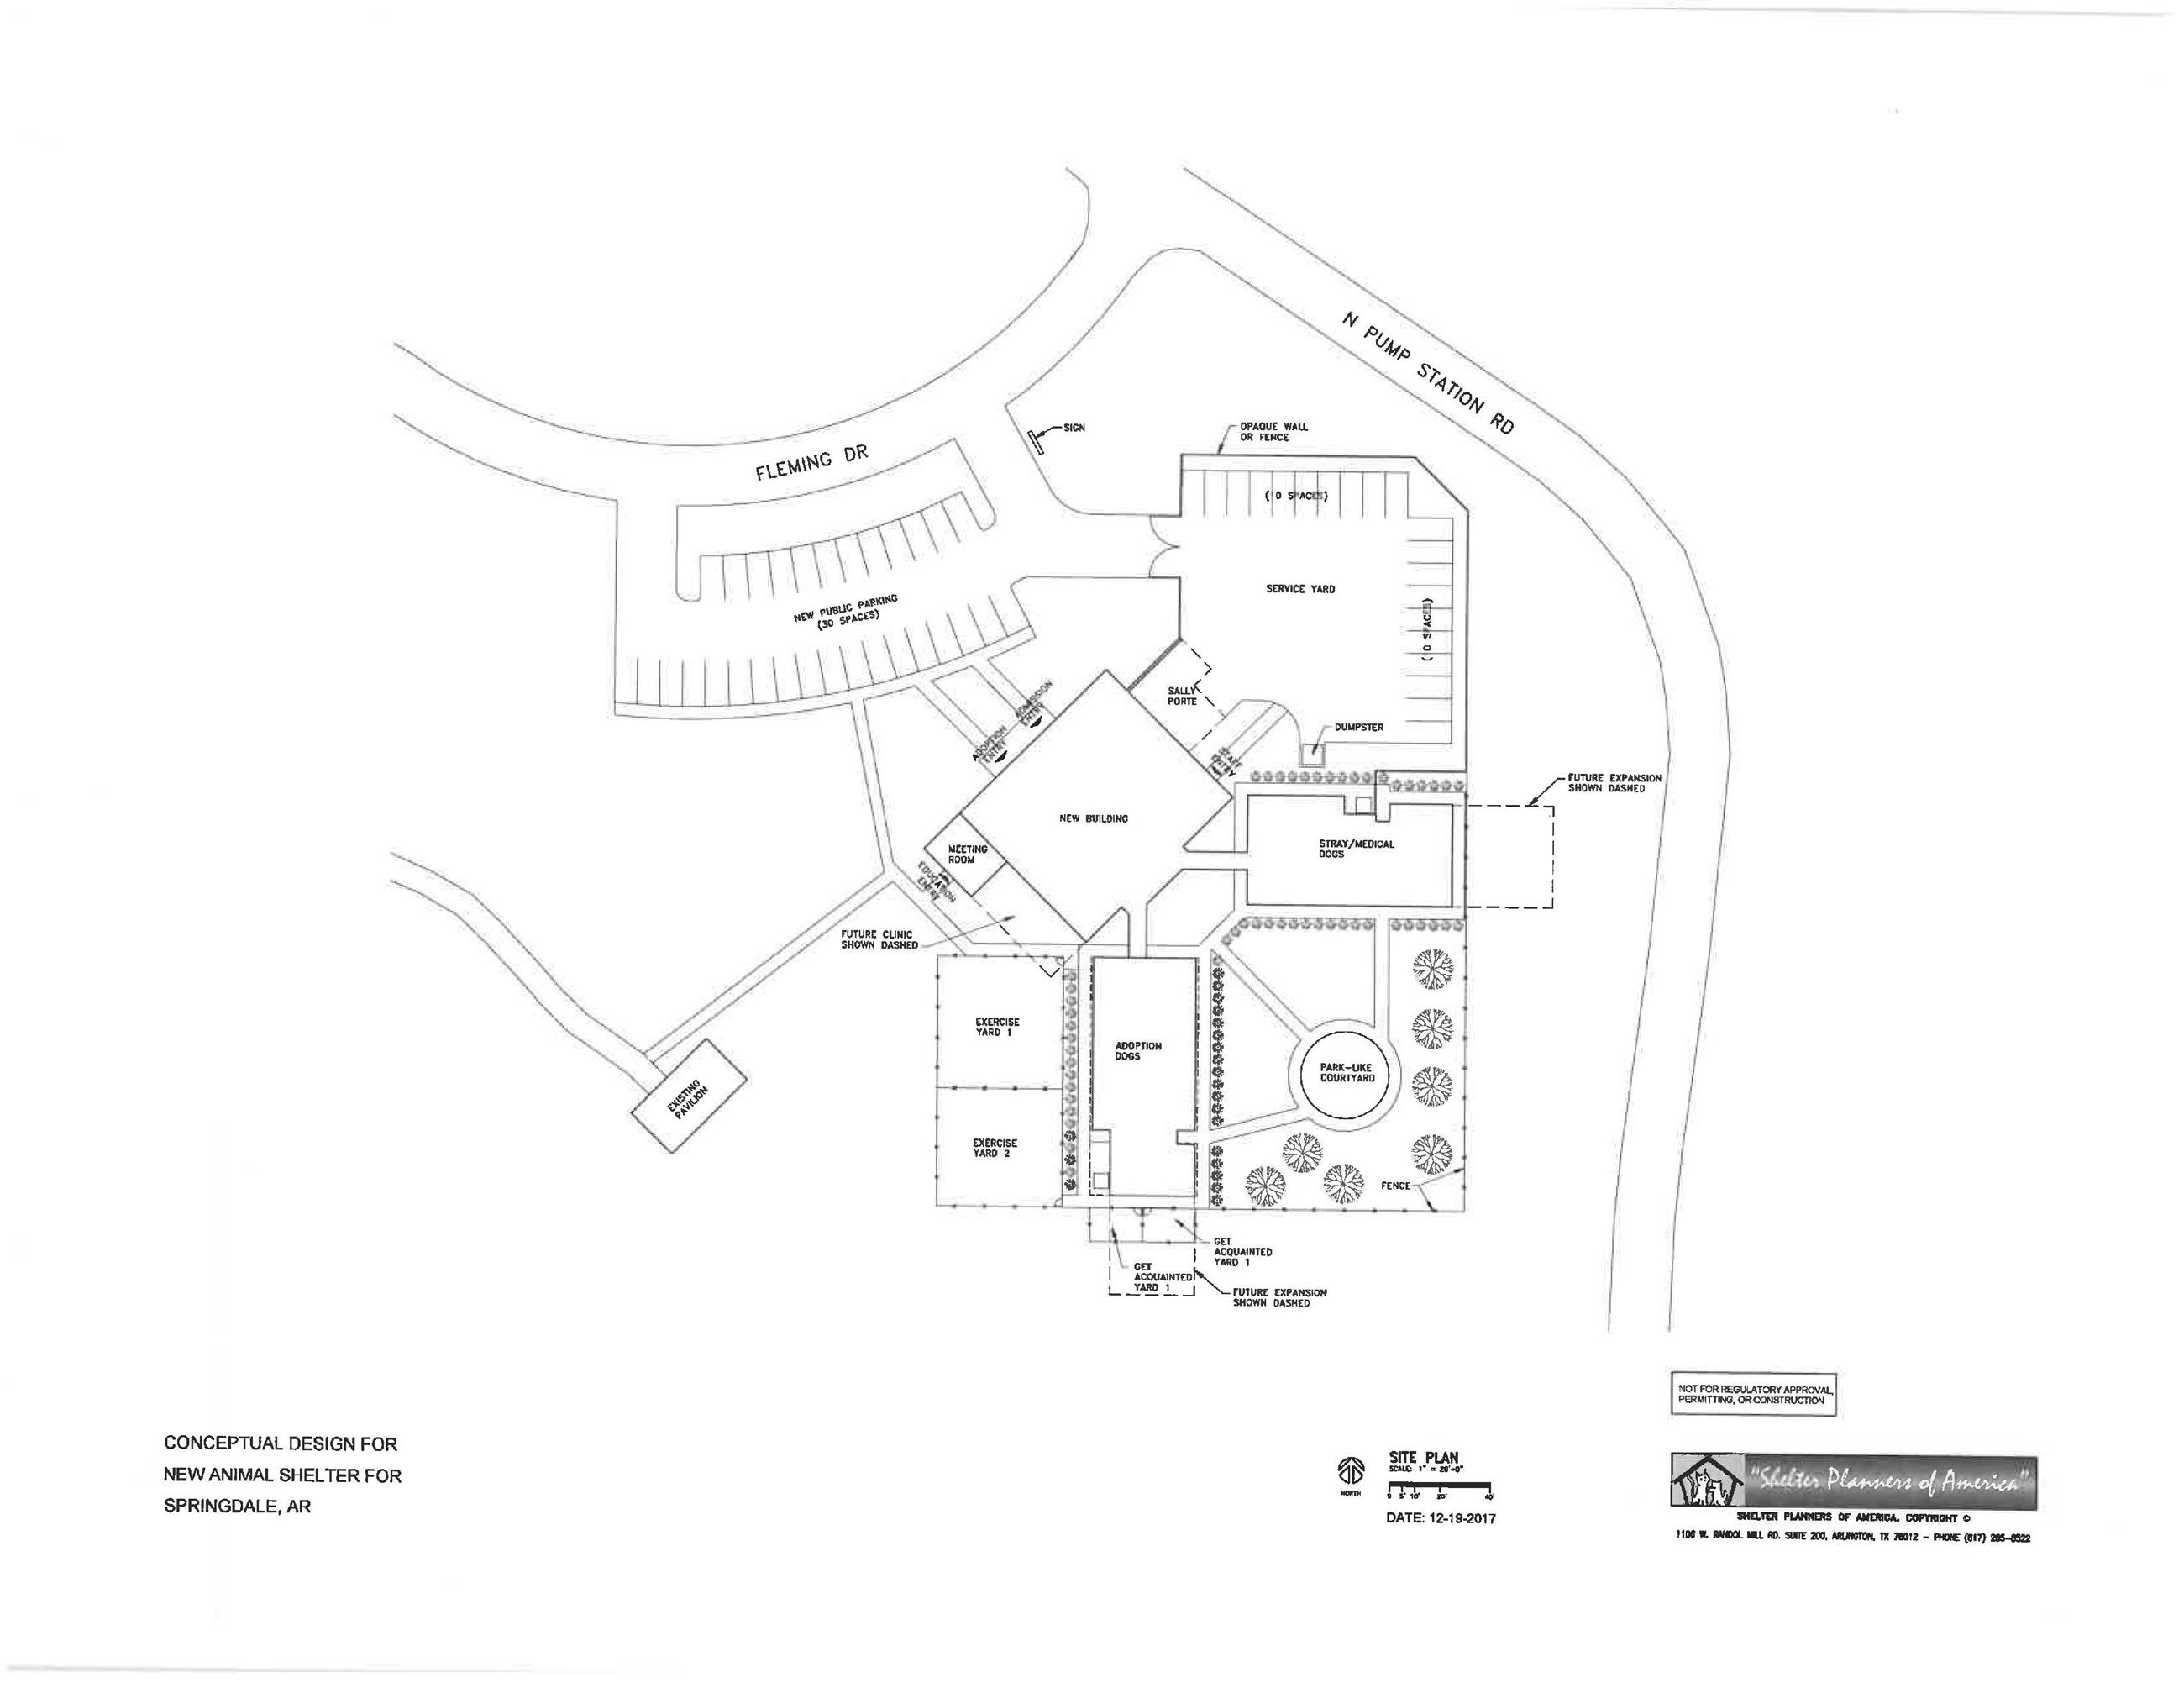 Proposed Location of Animal Shelter